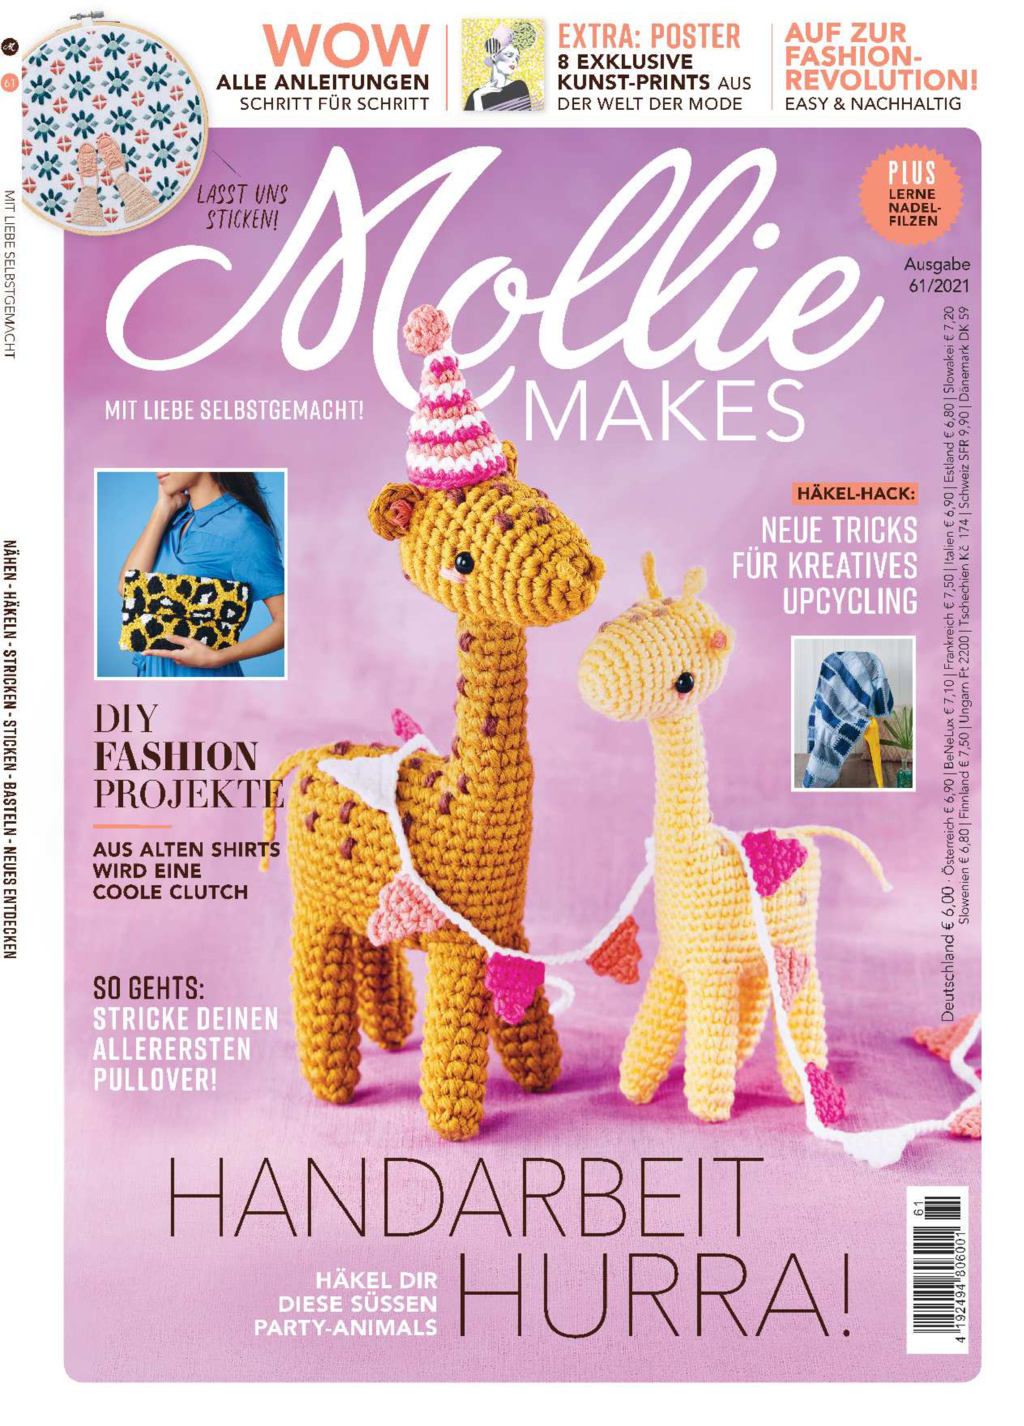 Mollie Makes Nr. 61/2021 - Handarbeit Hurra!